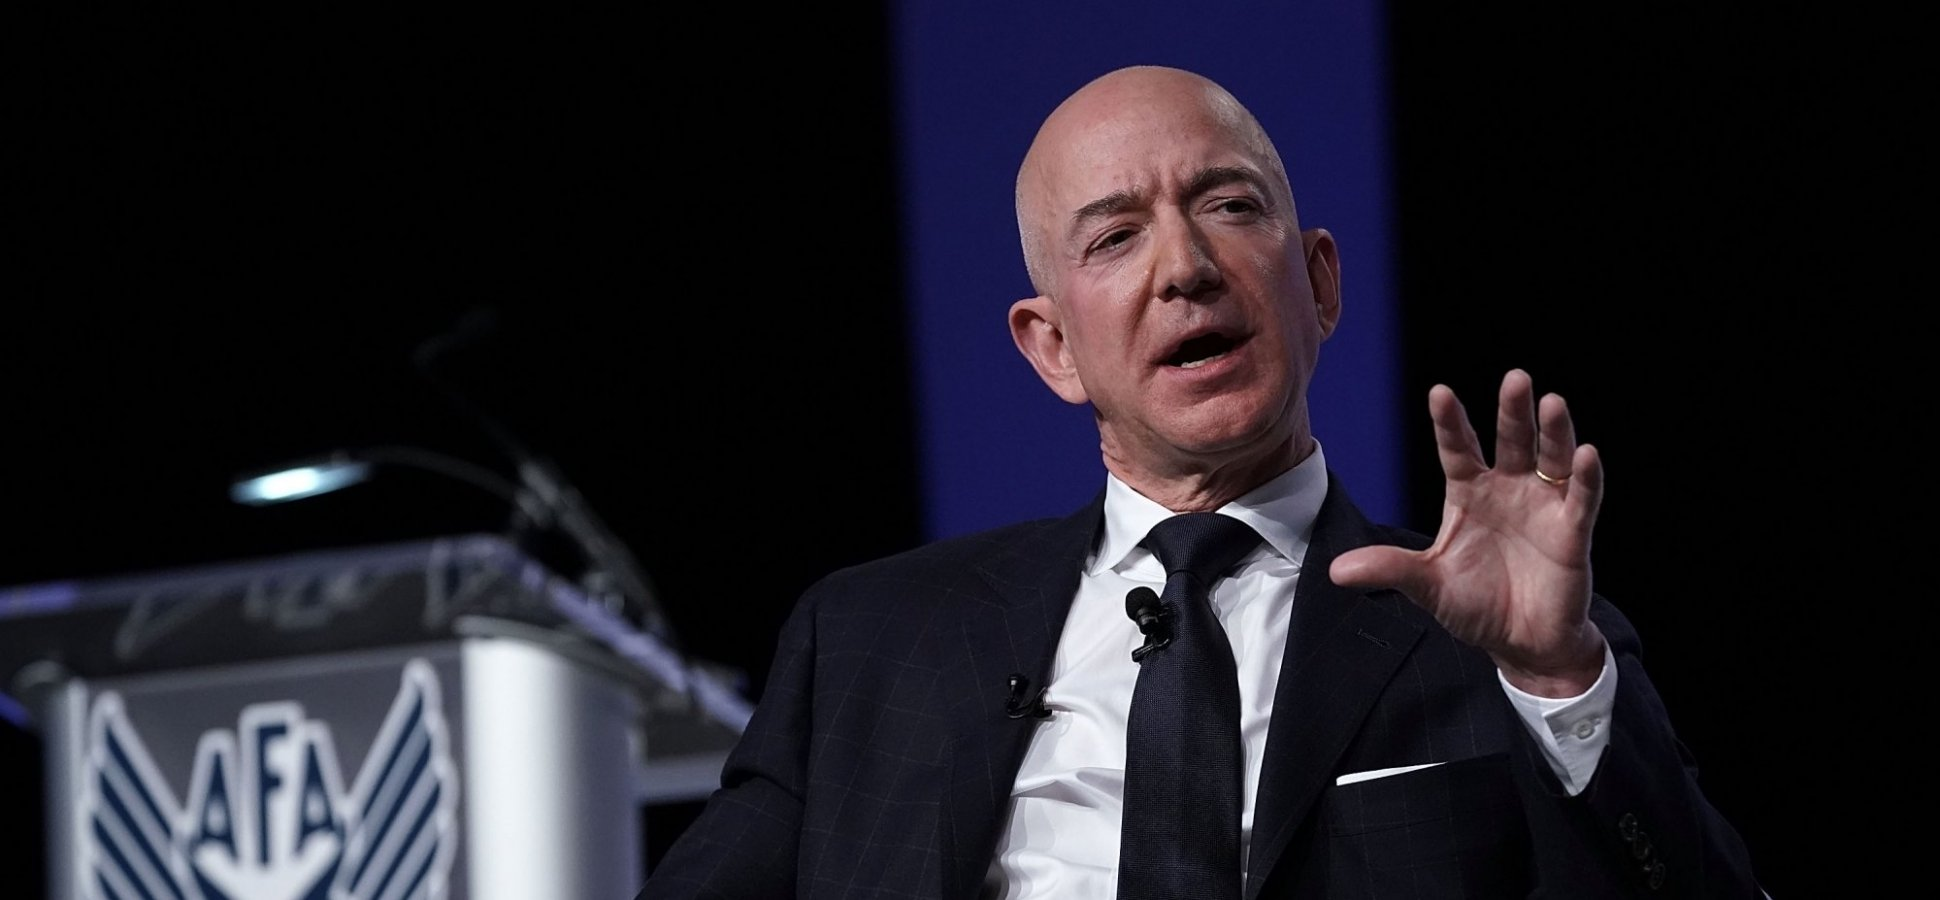 Jeff Bezos Just Made His Latest Move in This Modern-Day Space Race. Elon Musk, You're Next